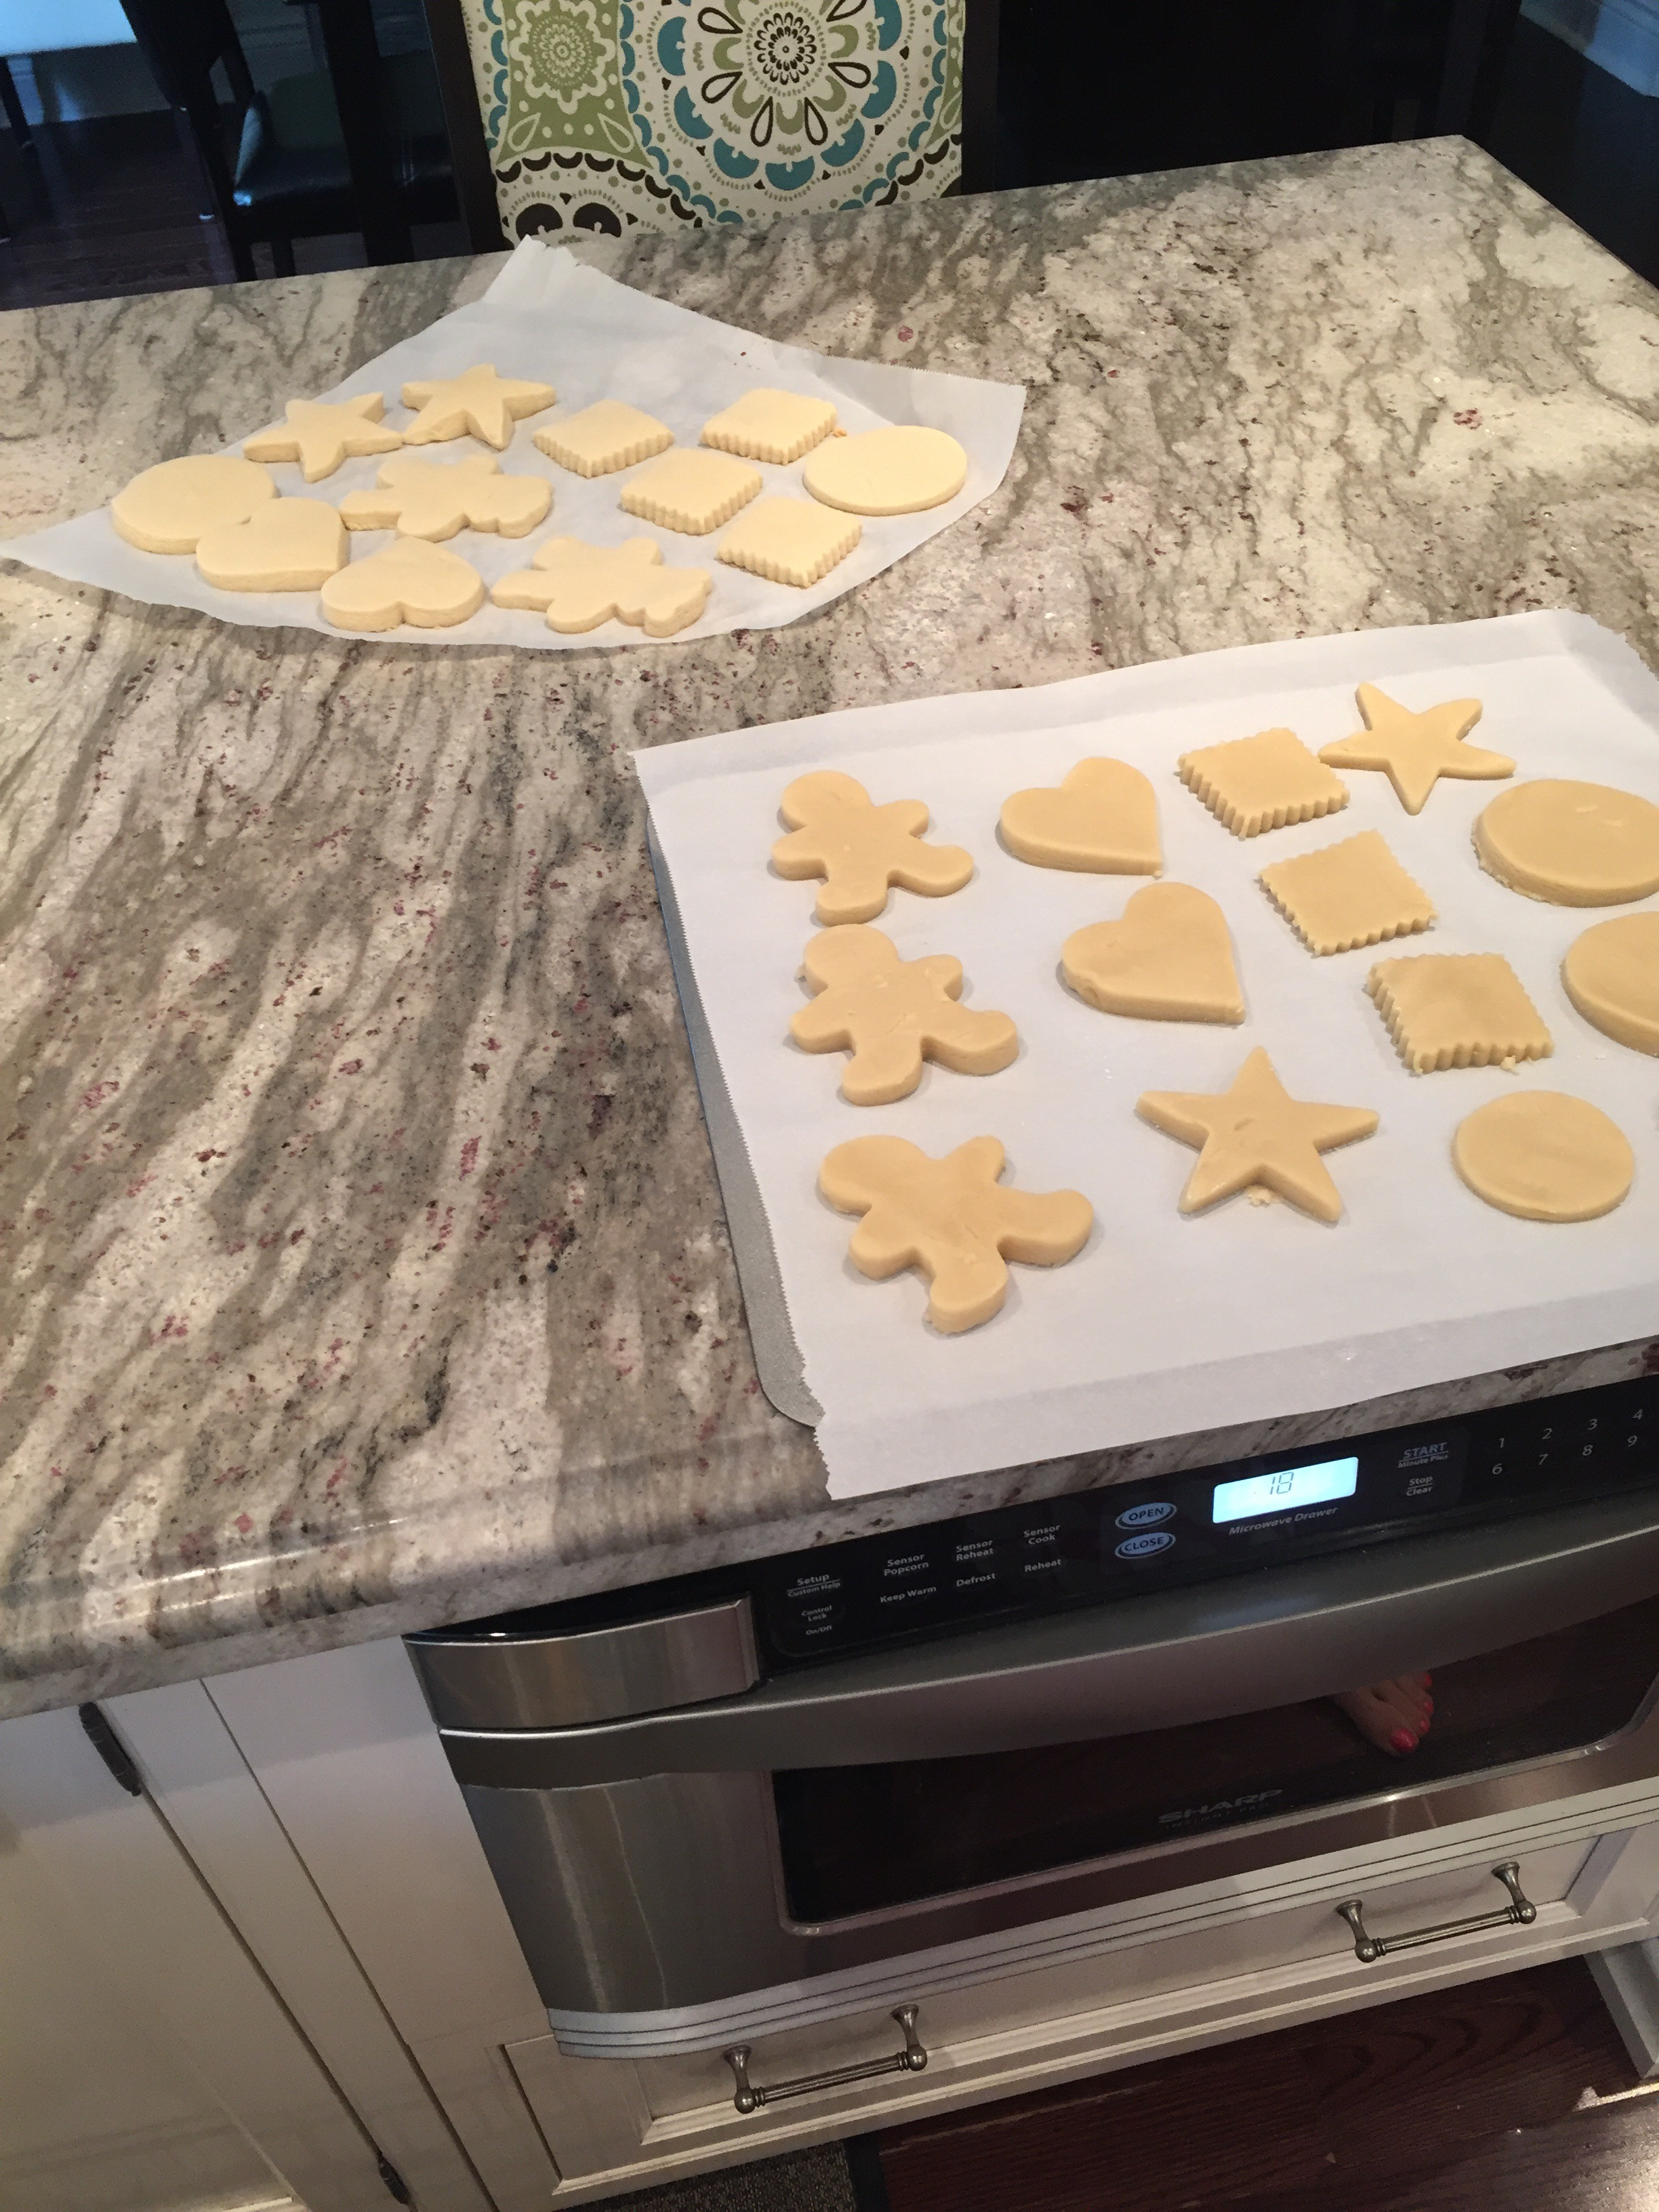 Choosing Health Means Choosing Homemade: Sugar Cookie Recipe